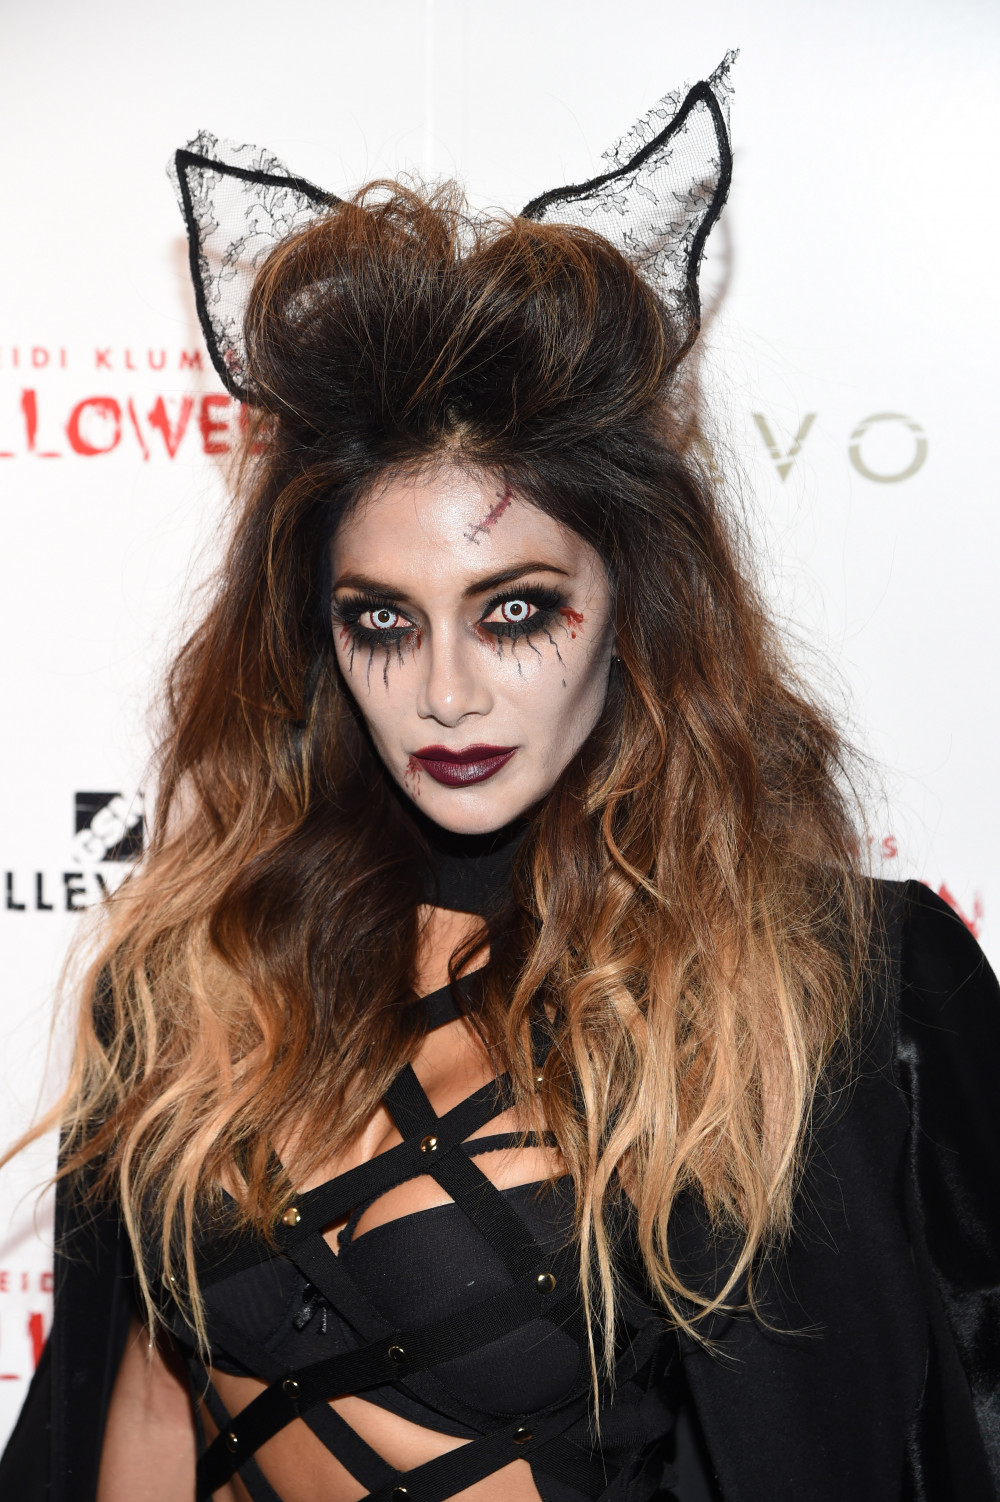 NEW YORK, NY - OCTOBER 31: Nicole Scherzinger attends Heidi Klum's 16th Annual Halloween Party sponsored by GSN's Hellevator And SVEDKA Vodka At LAVO New York on October 31, 2015 in New York City. (Photo by Nicholas Hunt/Getty Images for Heidi Klum)